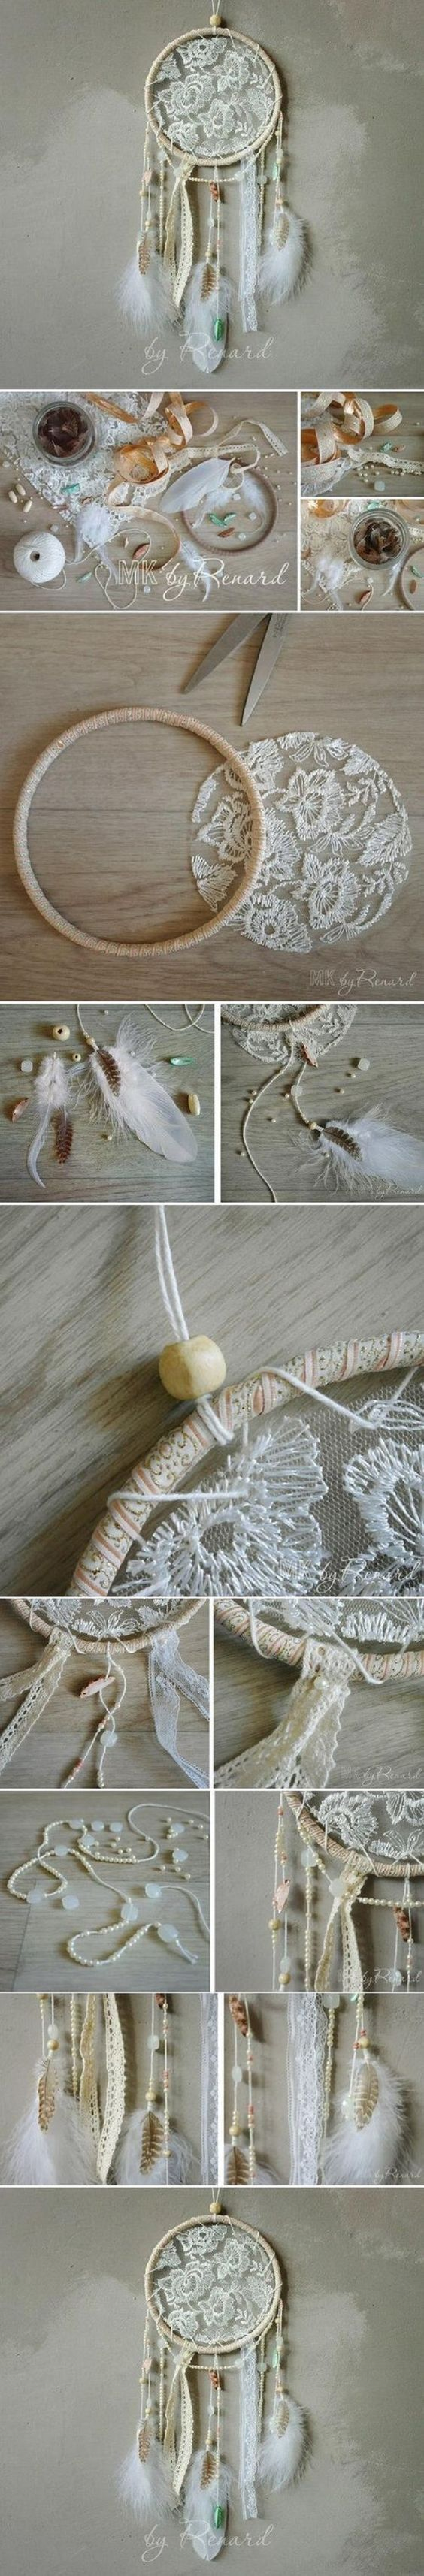 30 DIY Shabby Chic Decor Ideas & Tutorials 2017